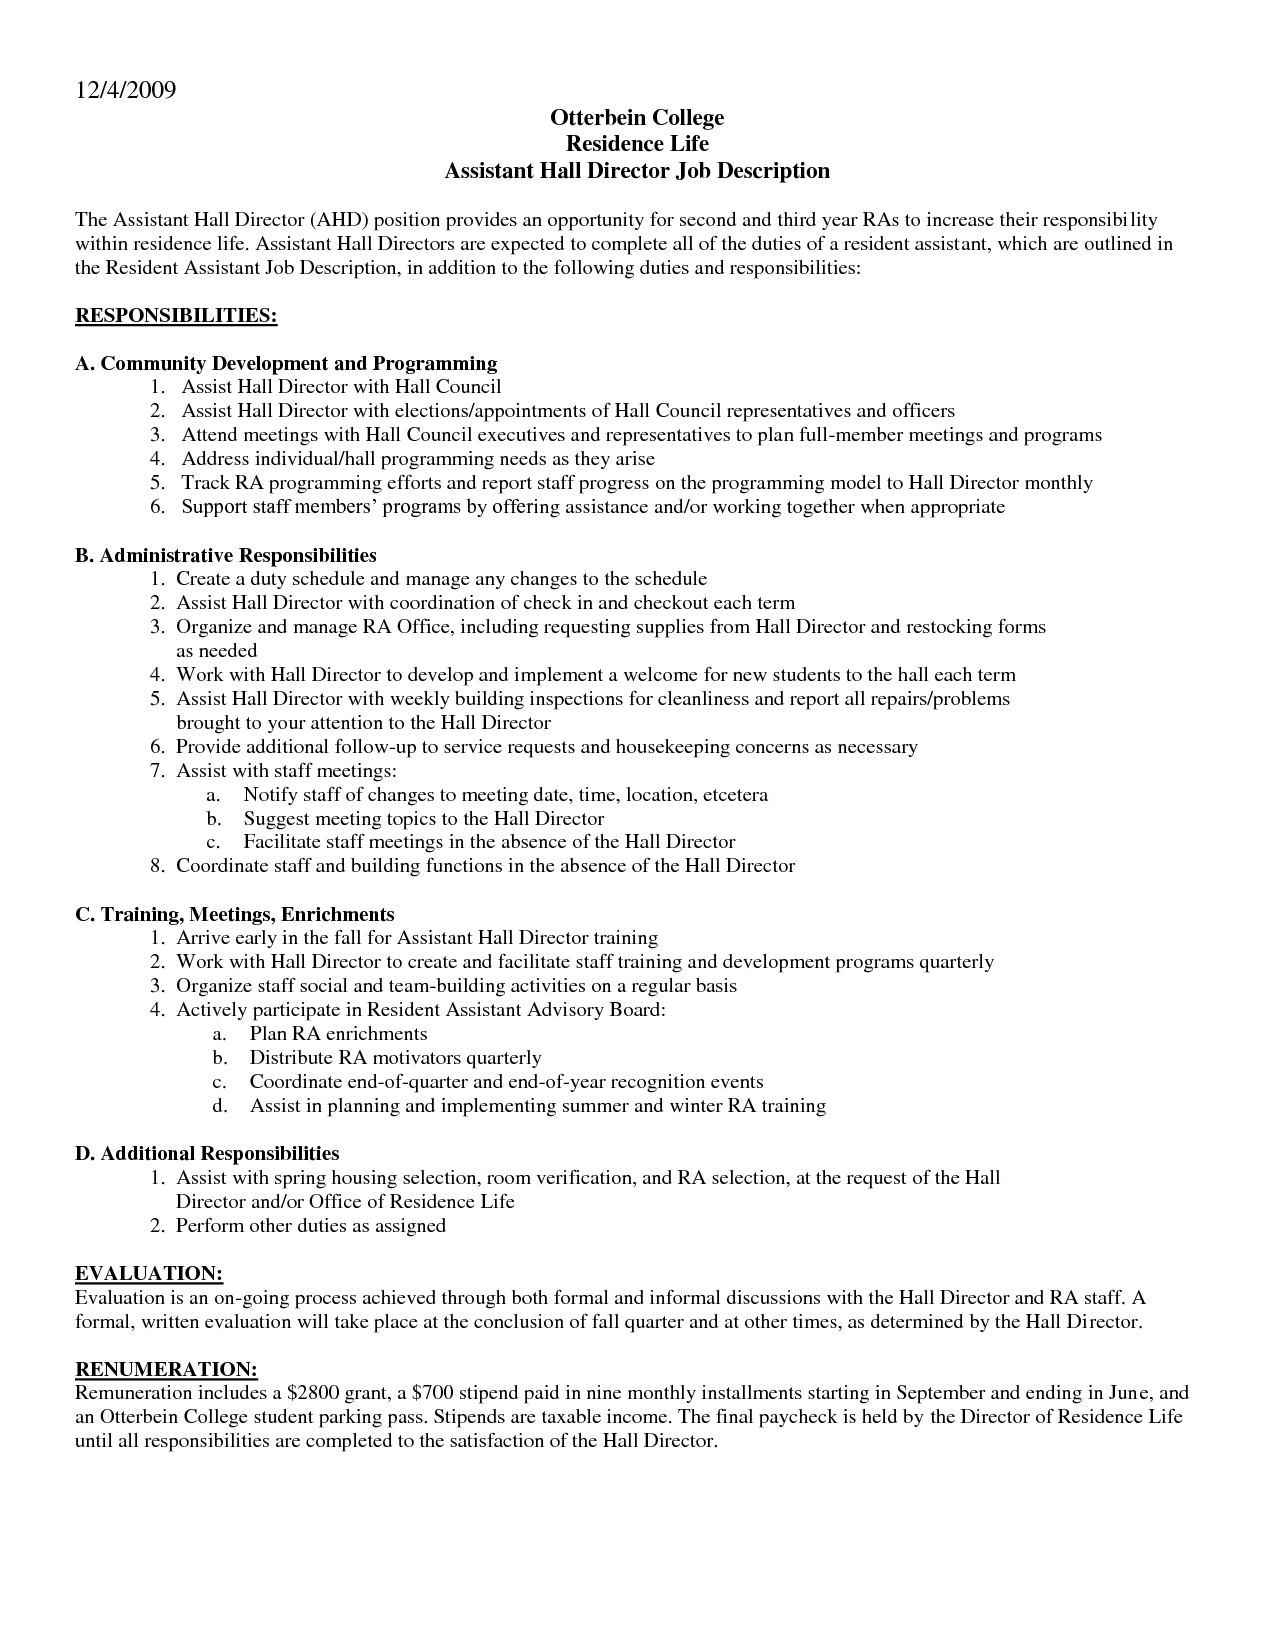 26 FREE COVER LETTER FOR VET ASSISTANT PDF DOWNLOAD DOCX